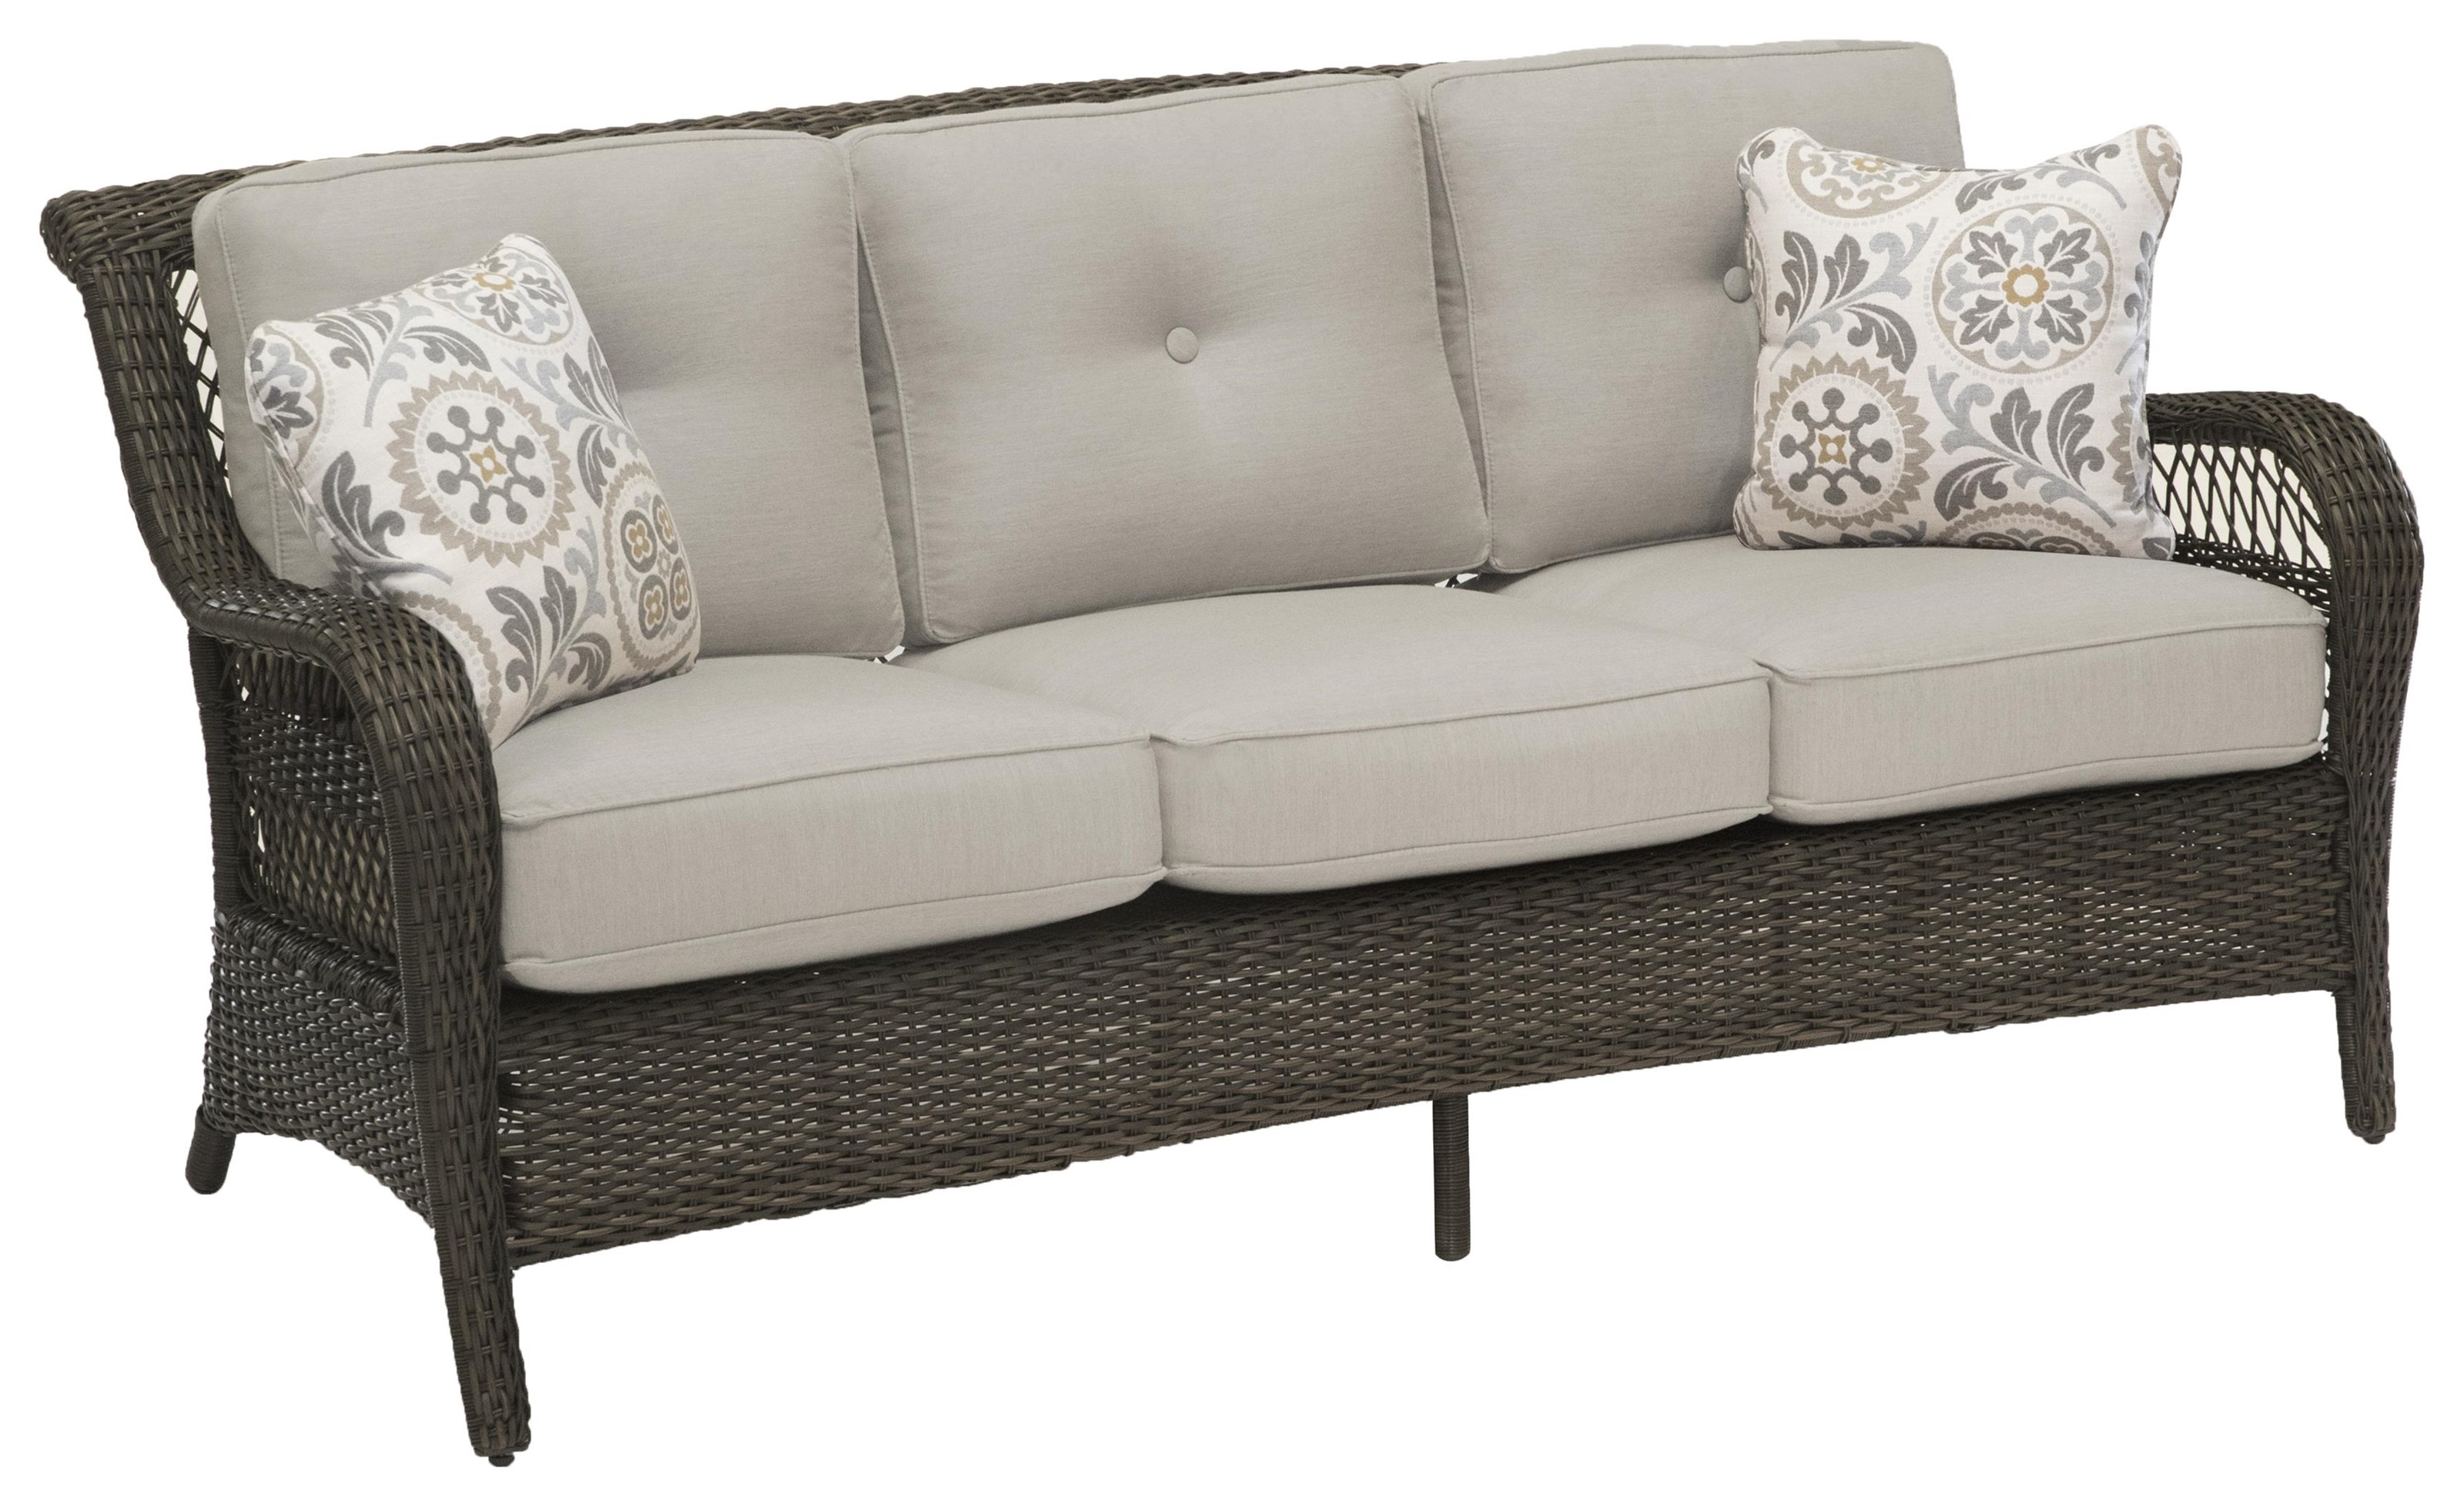 Riviera Sofa by Apricity Outdoor at Johnny Janosik